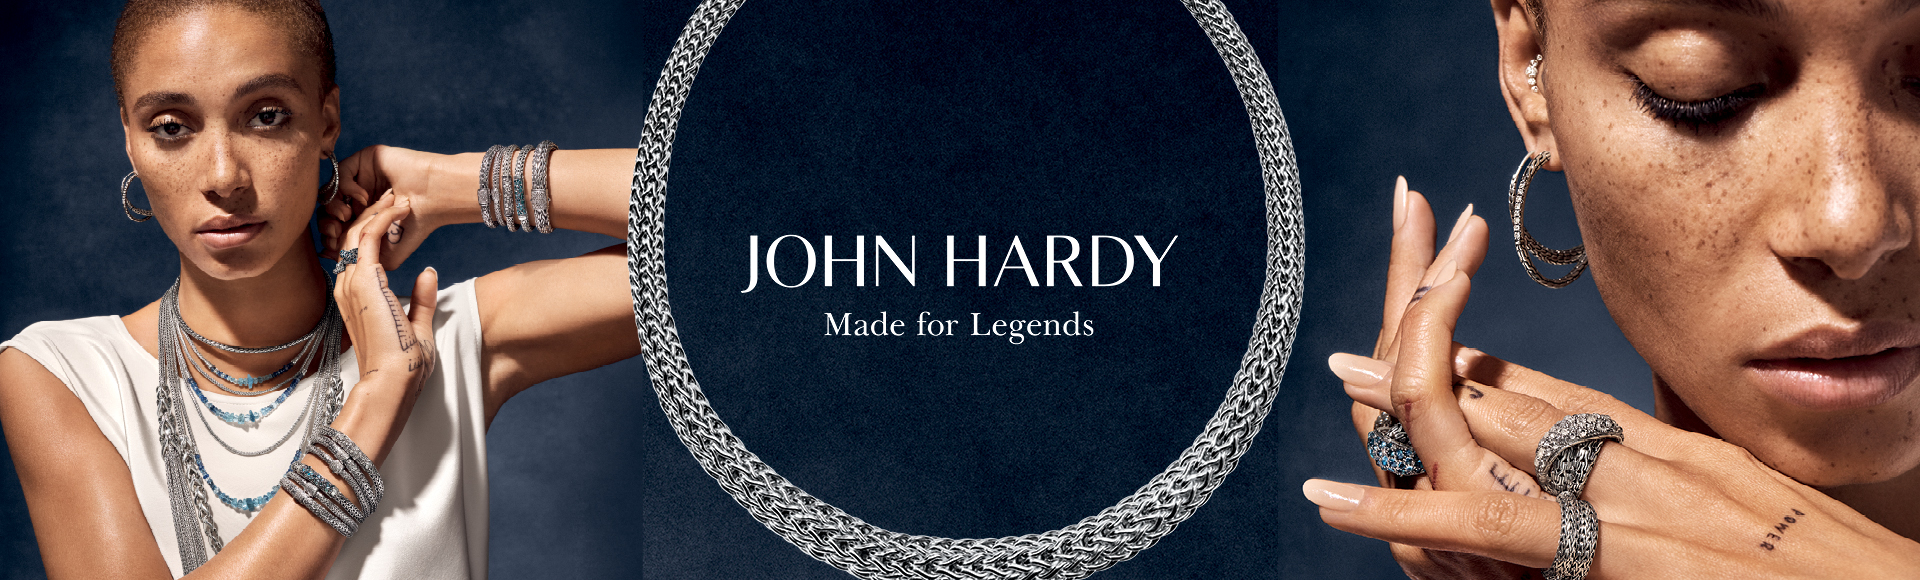 Introducing John Hardy